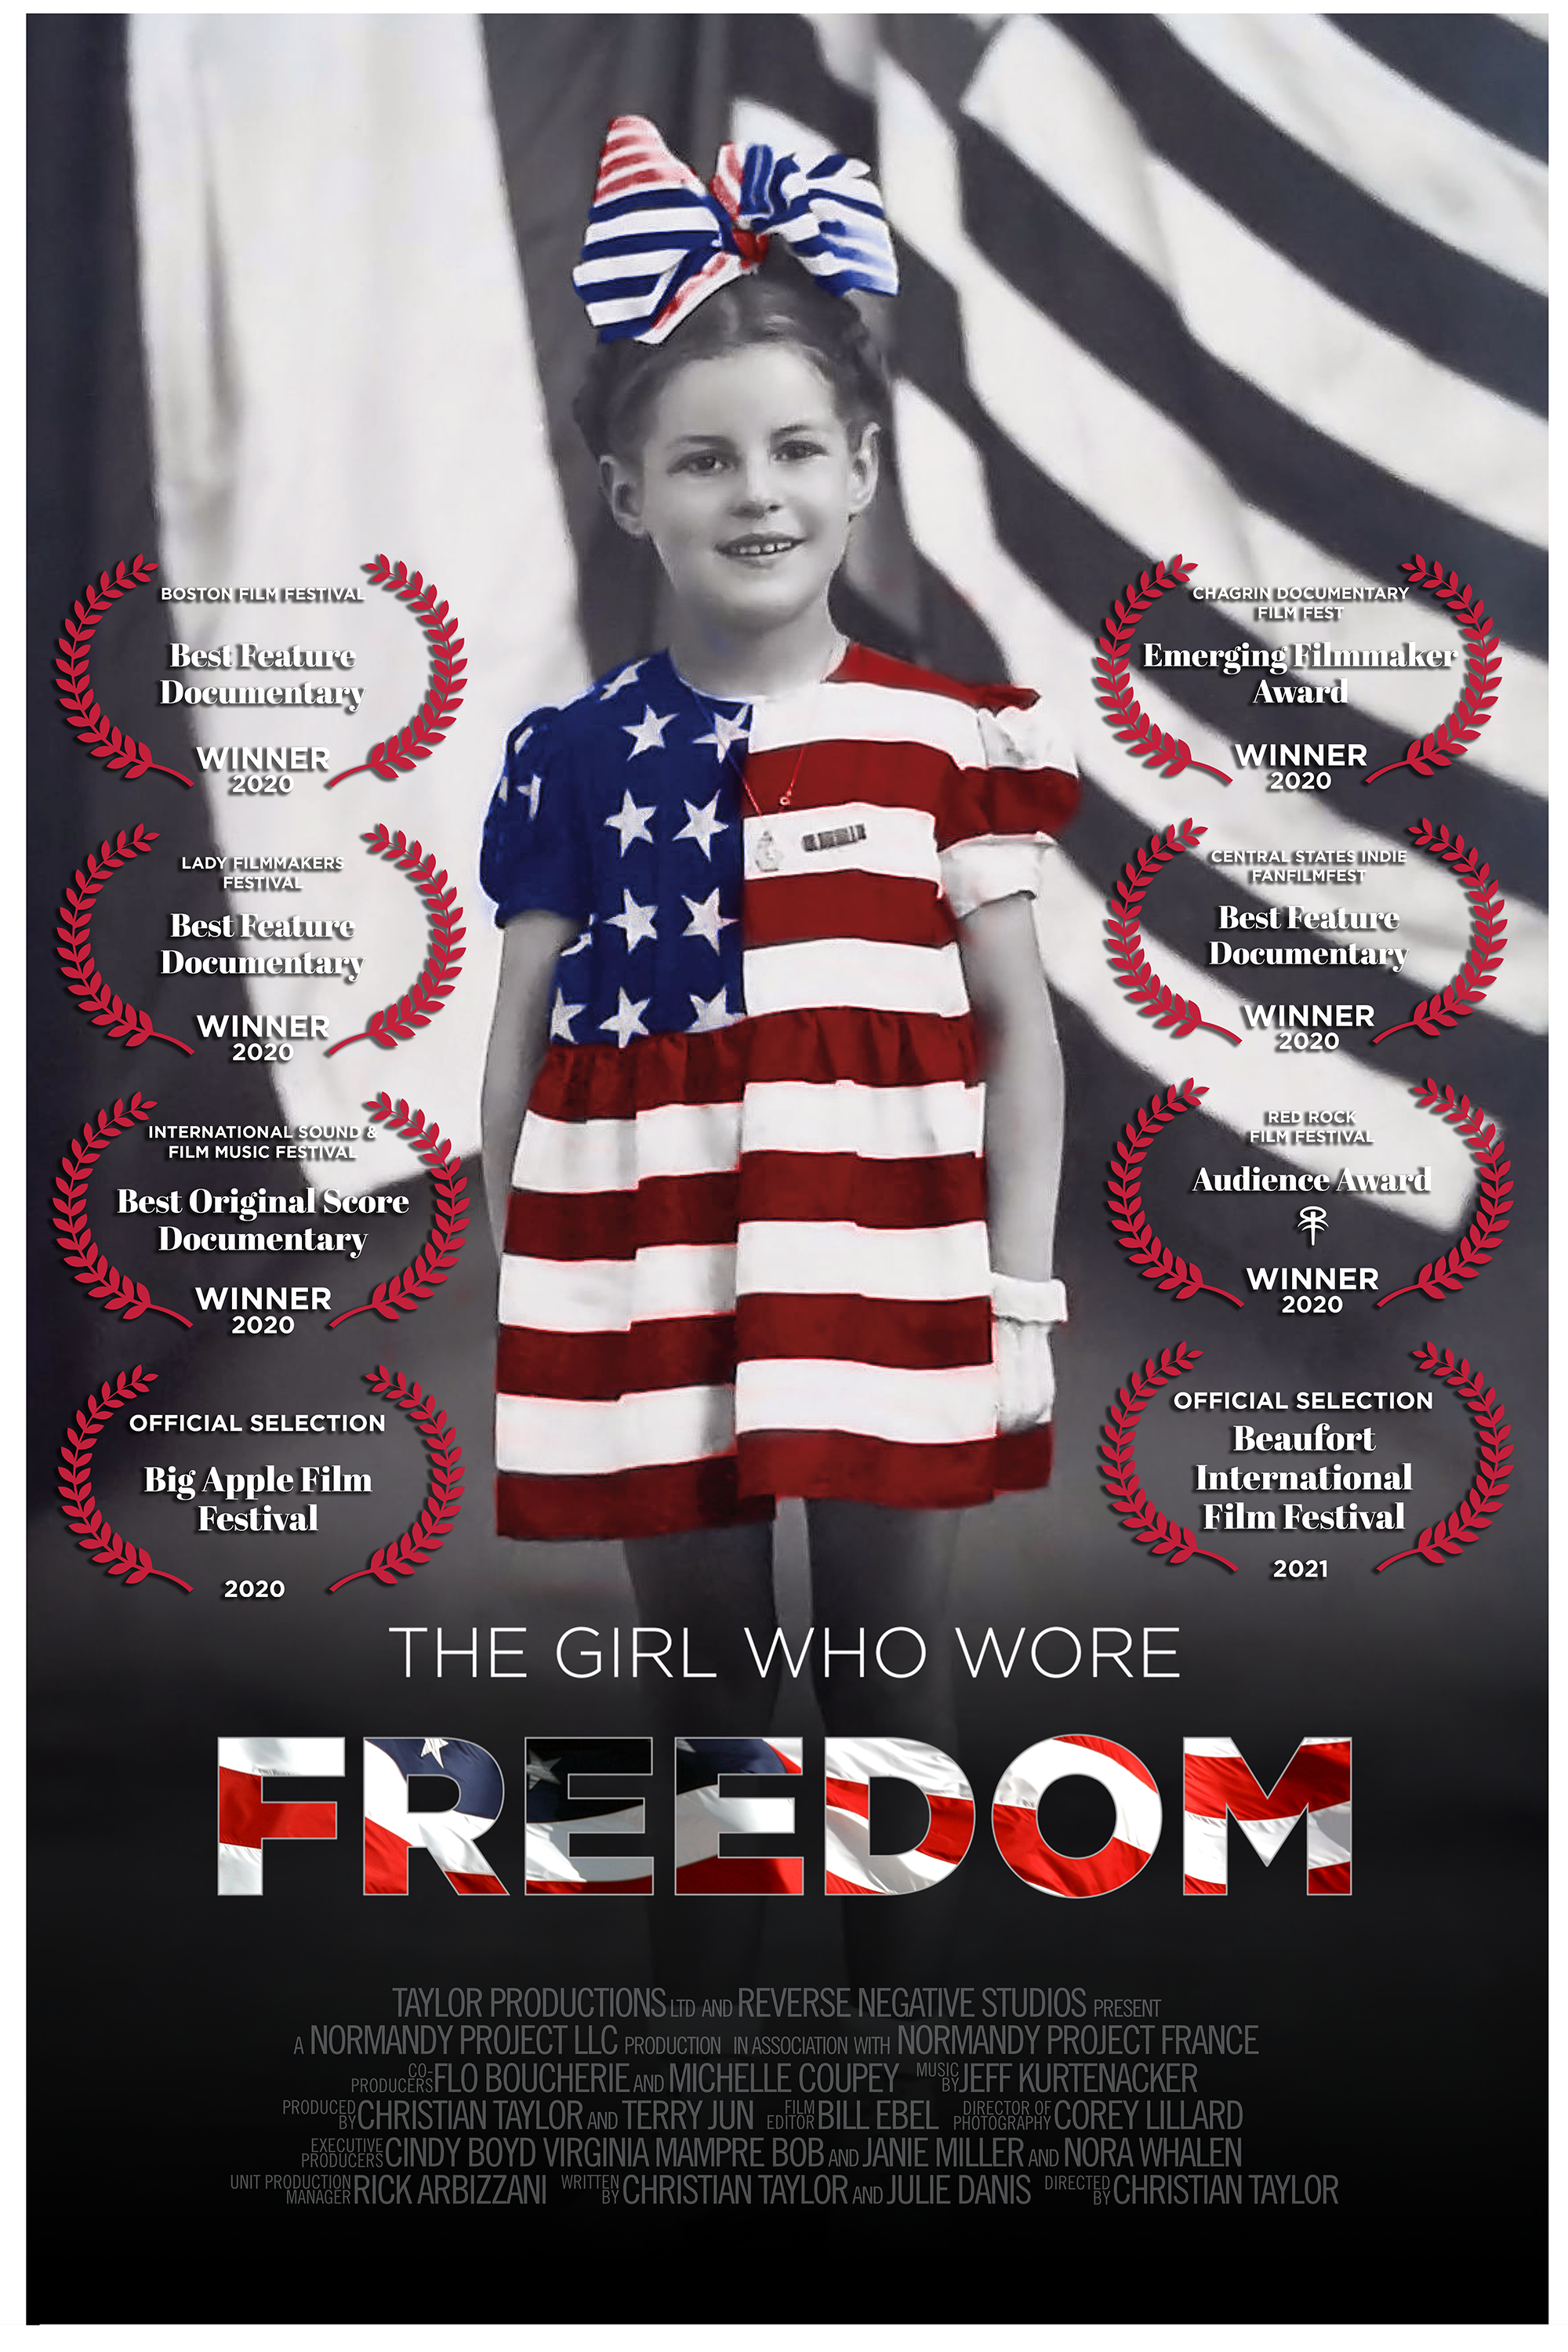 The movie poster of The Girl Who Wore Freedom with the laurels and awards that the film has received in a vertical format